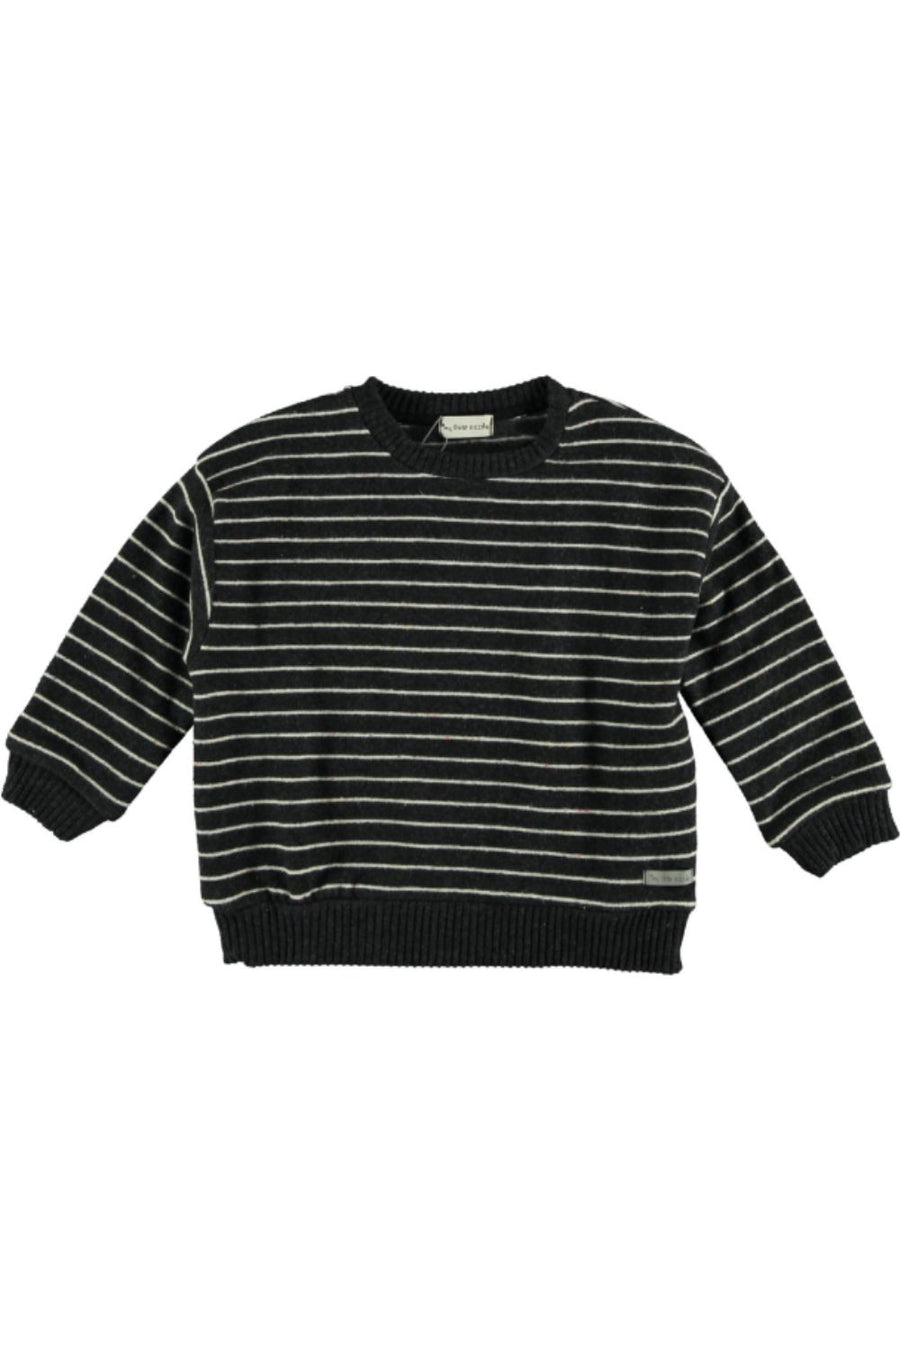 KIDS JERSEY PREMIUM STRIPES